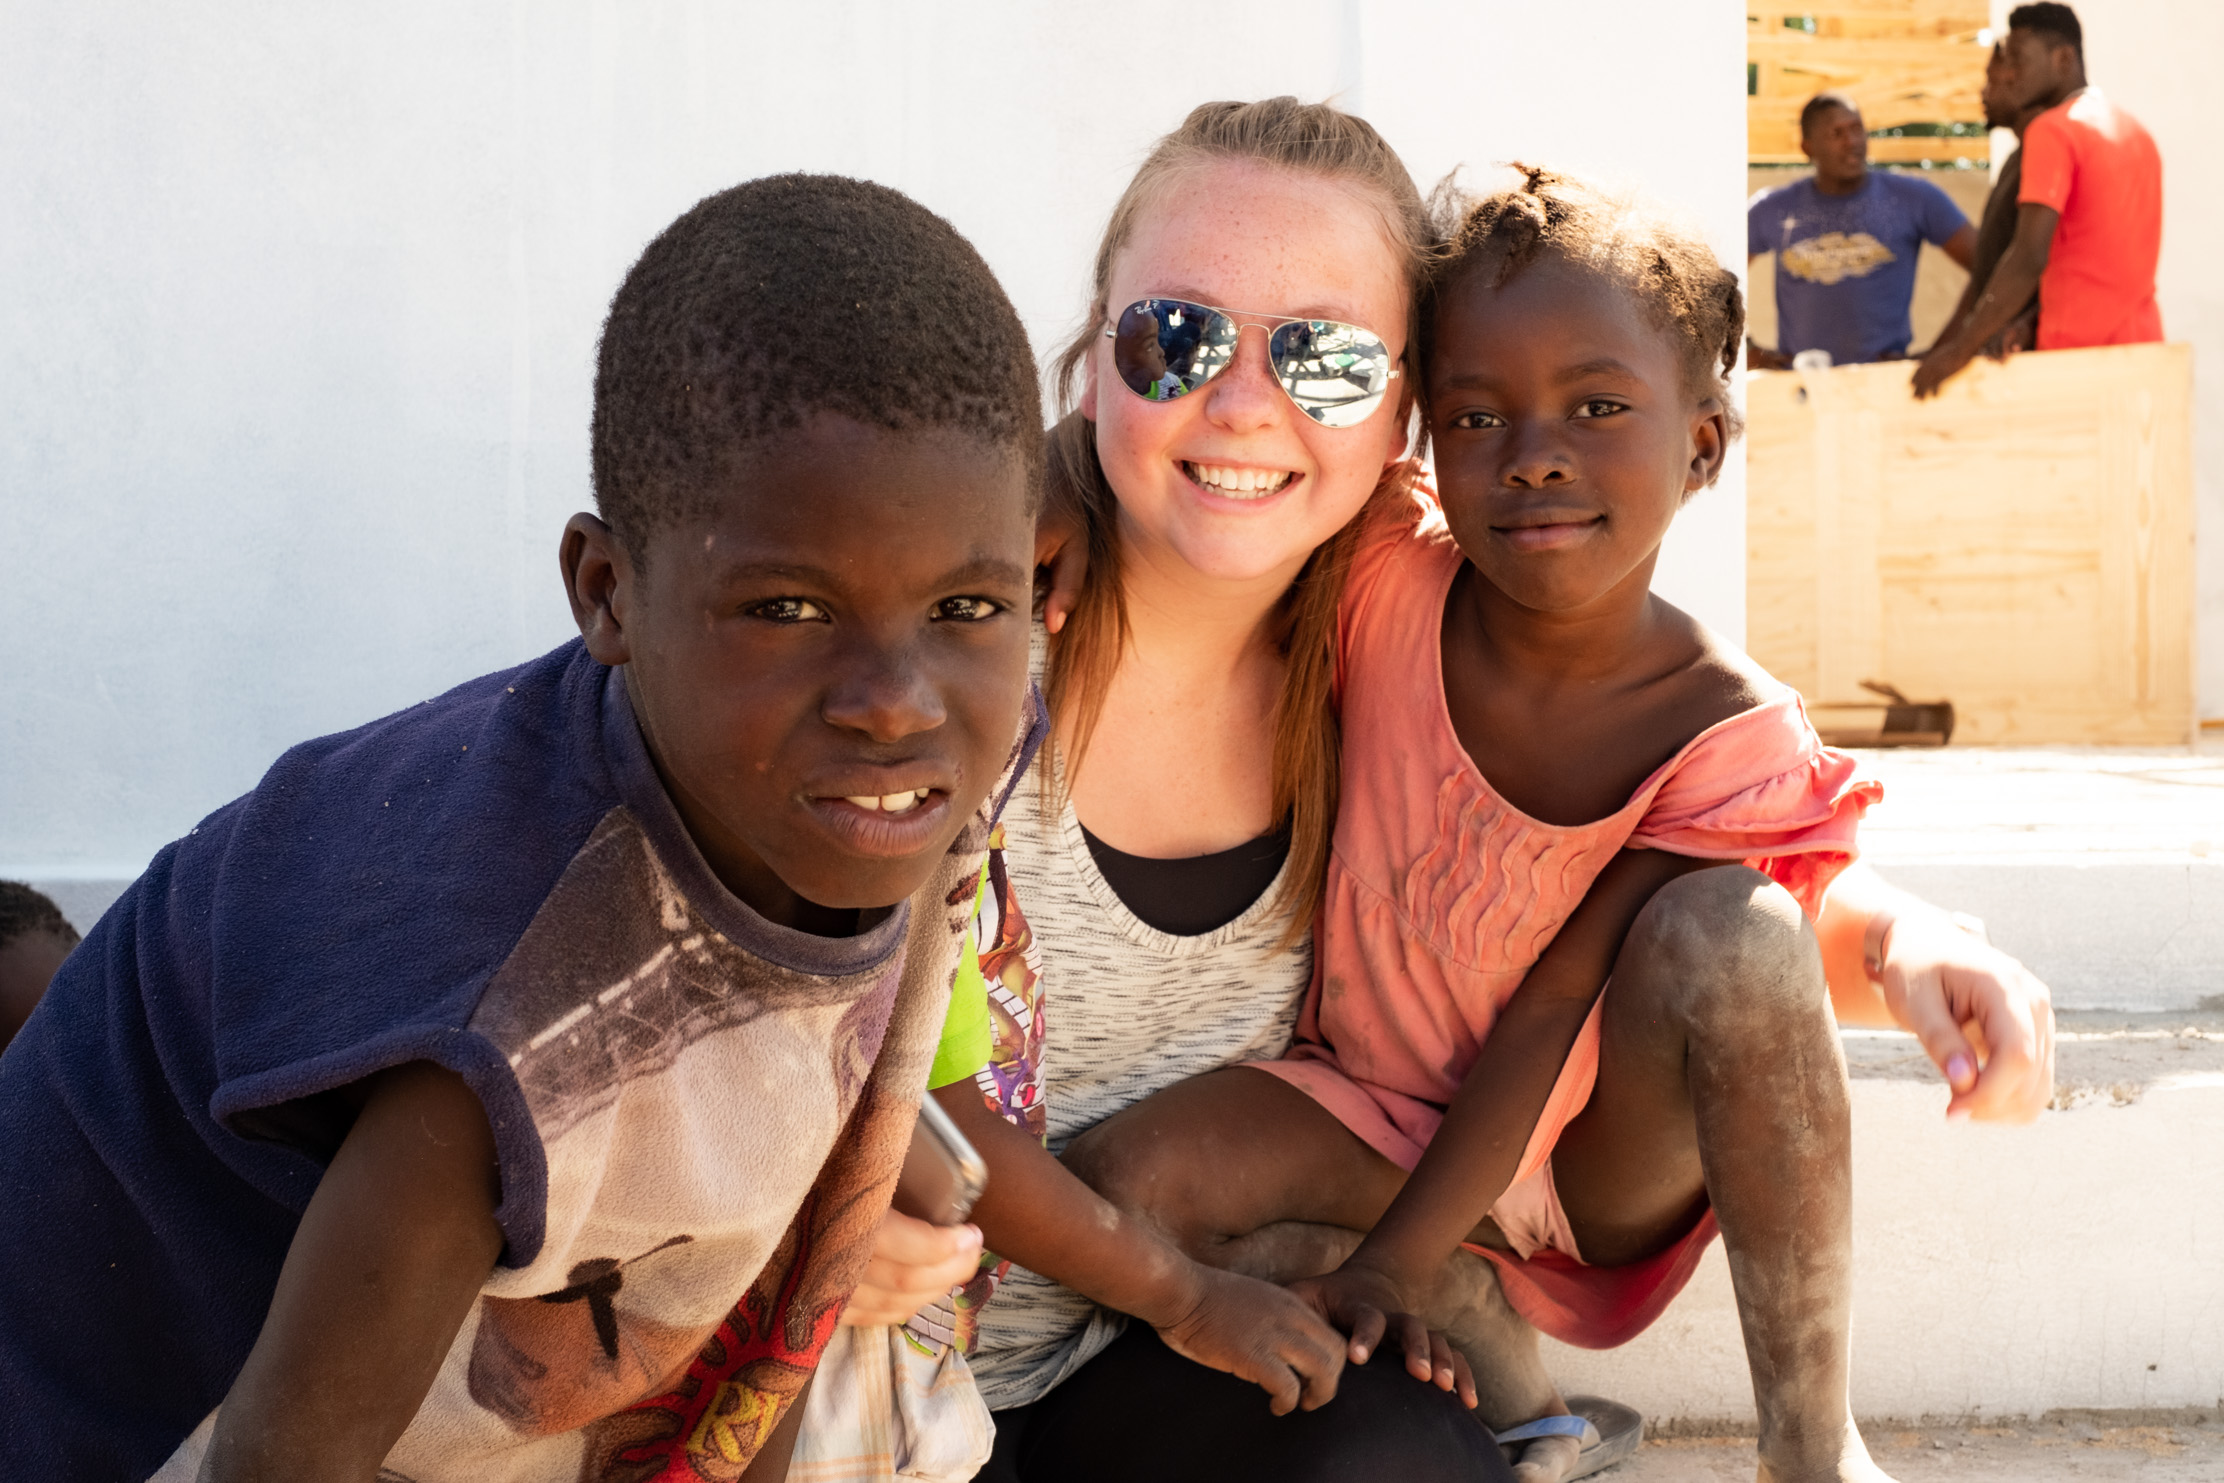 NYAGI volunteer, Becca Makens, with kids outside a new community center being built in Chambrun, just outside Port-au-Prince, Haiti.